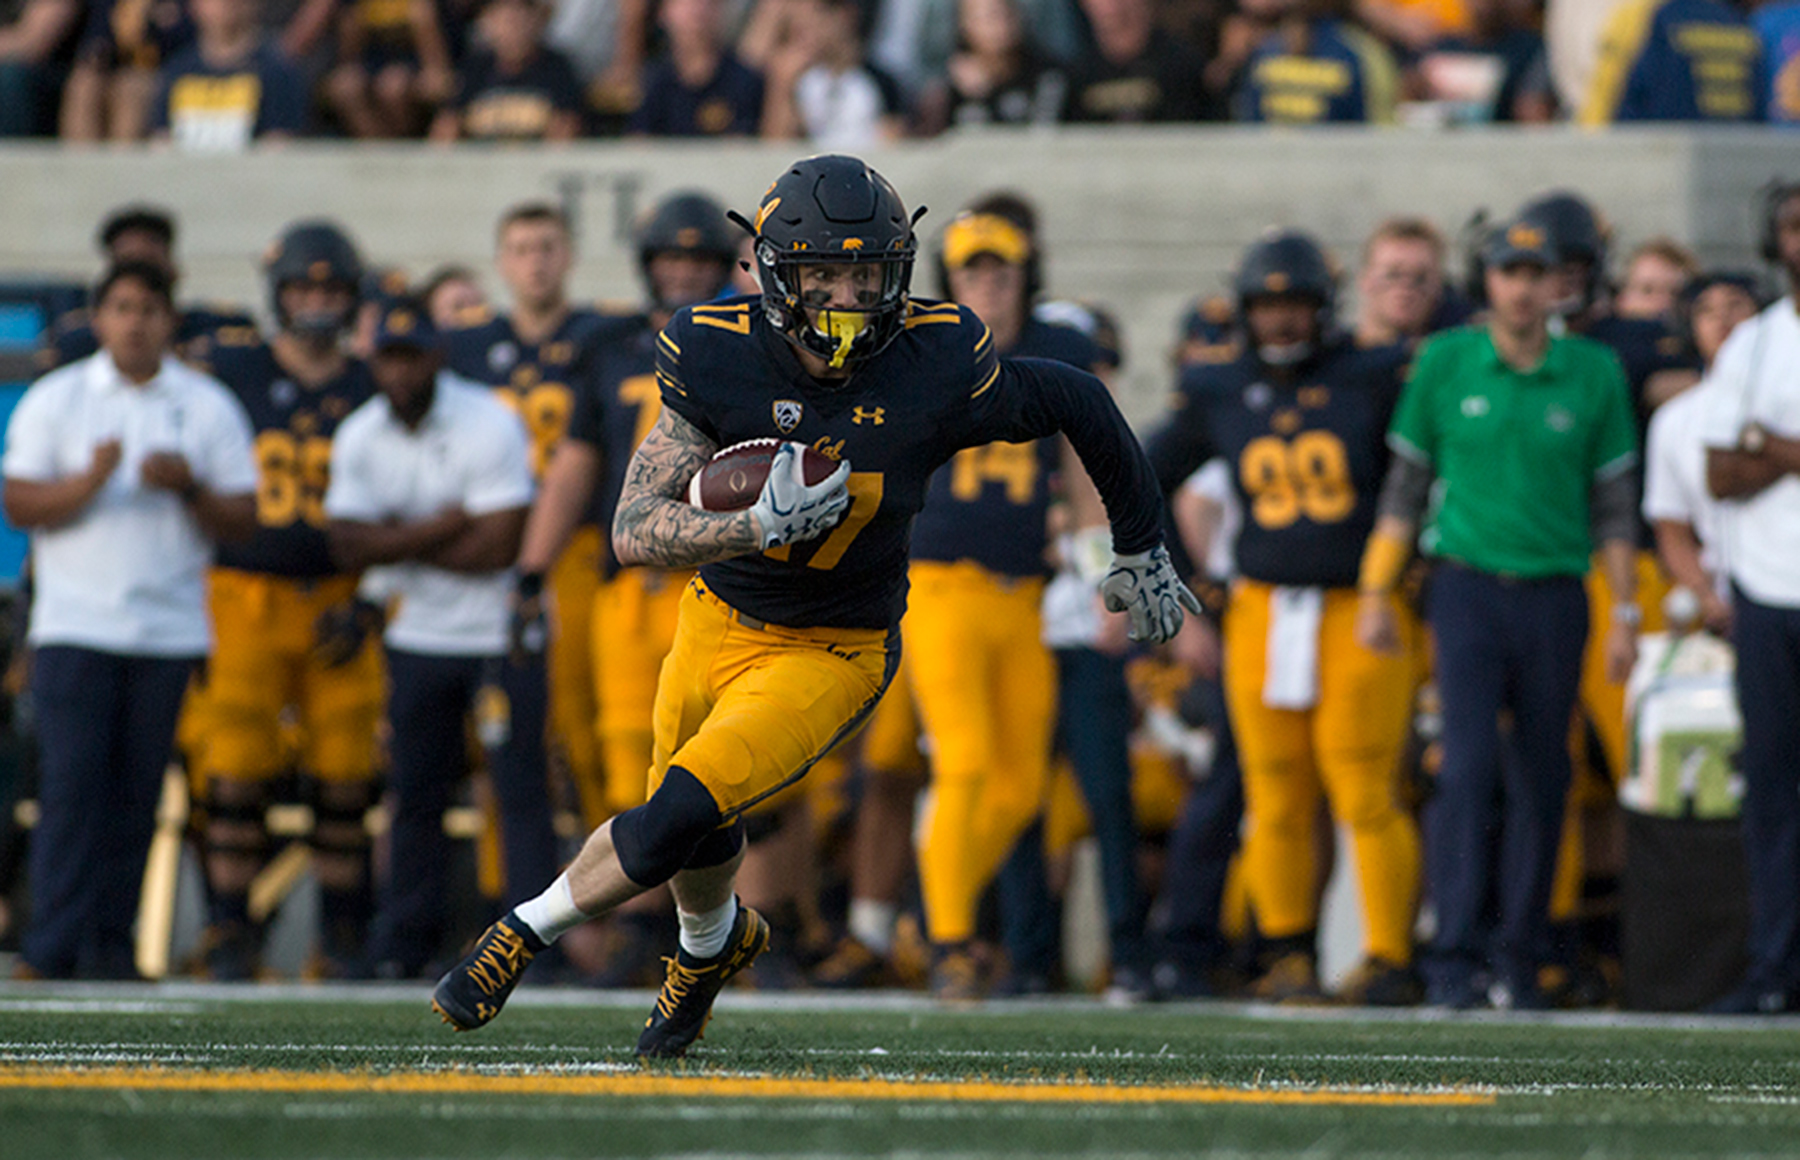 Cal football seeks 1st win in Cheez-It Bowl rematch against TCU